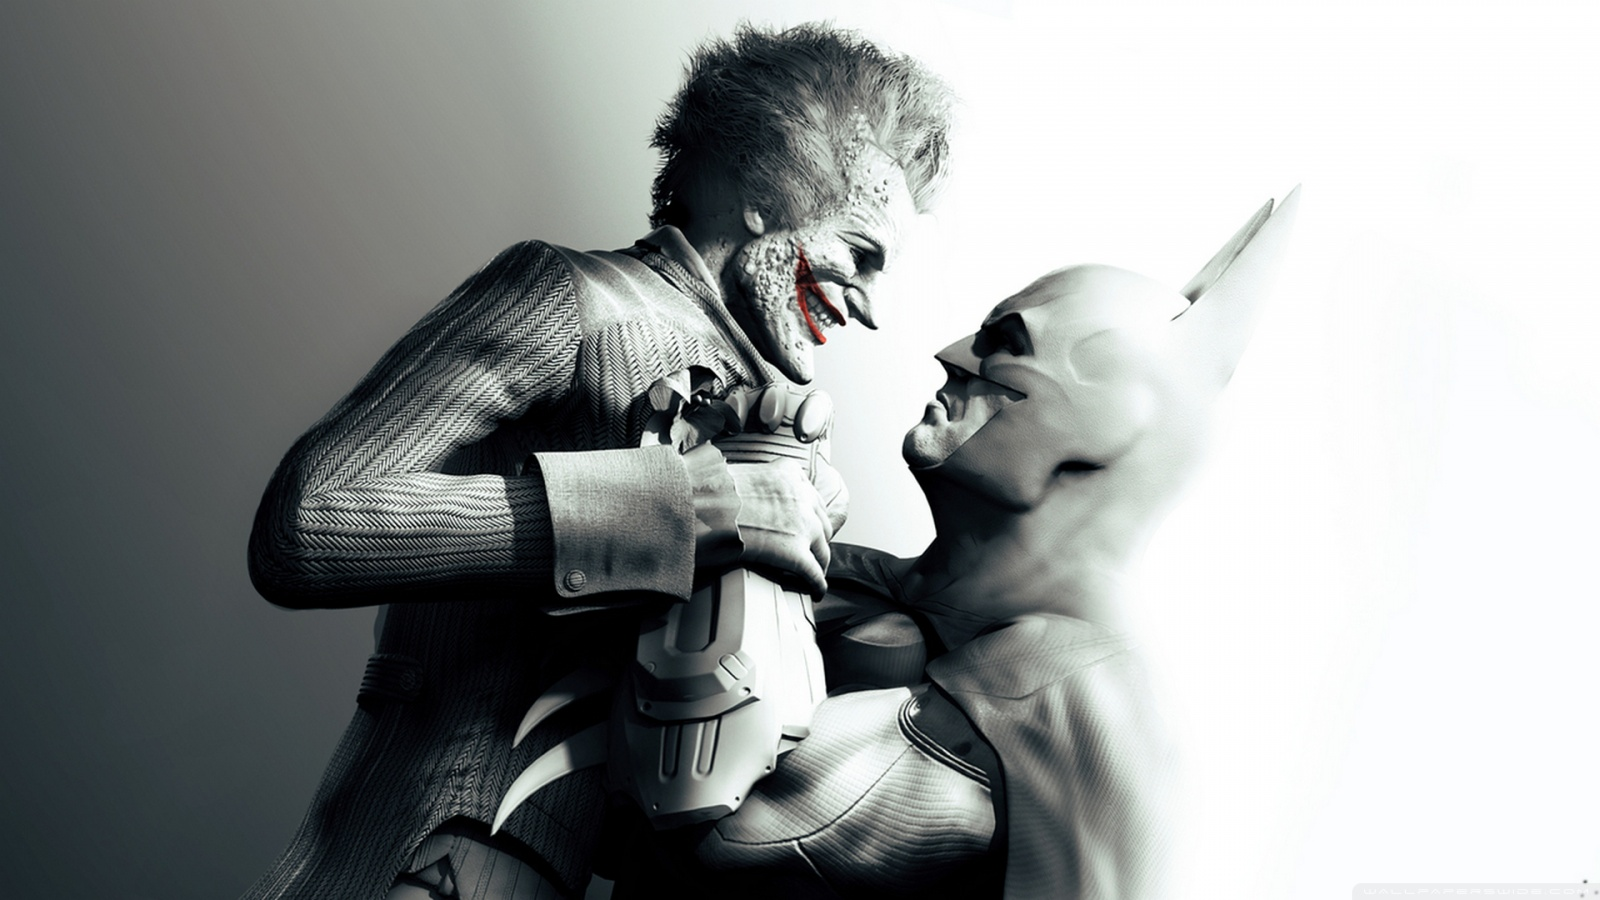 grendel vs joker villain essay Beowulf and batman essayson a dark night, with mayhem on the verge and the   while fighting grendel beowulf tore off one of his appendages (his arm), now i   villains such as: the joker, the riddler, 2-face, catwoman, or the penguin.